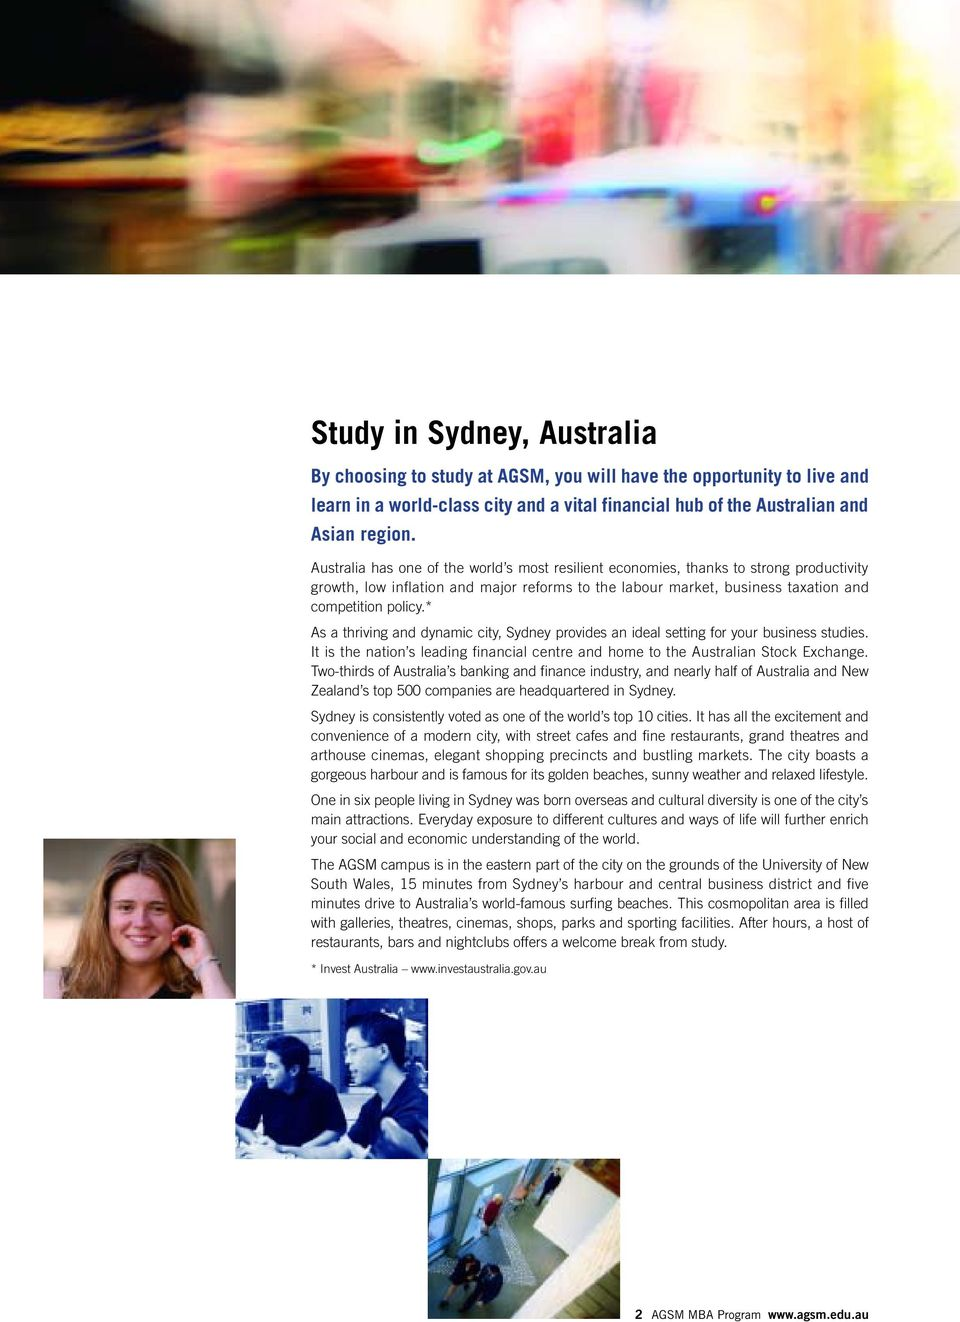 * As a thriving and dynamic city, Sydney provides an ideal setting for your business studies. It is the nation s leading financial centre and home to the Australian Stock Exchange.